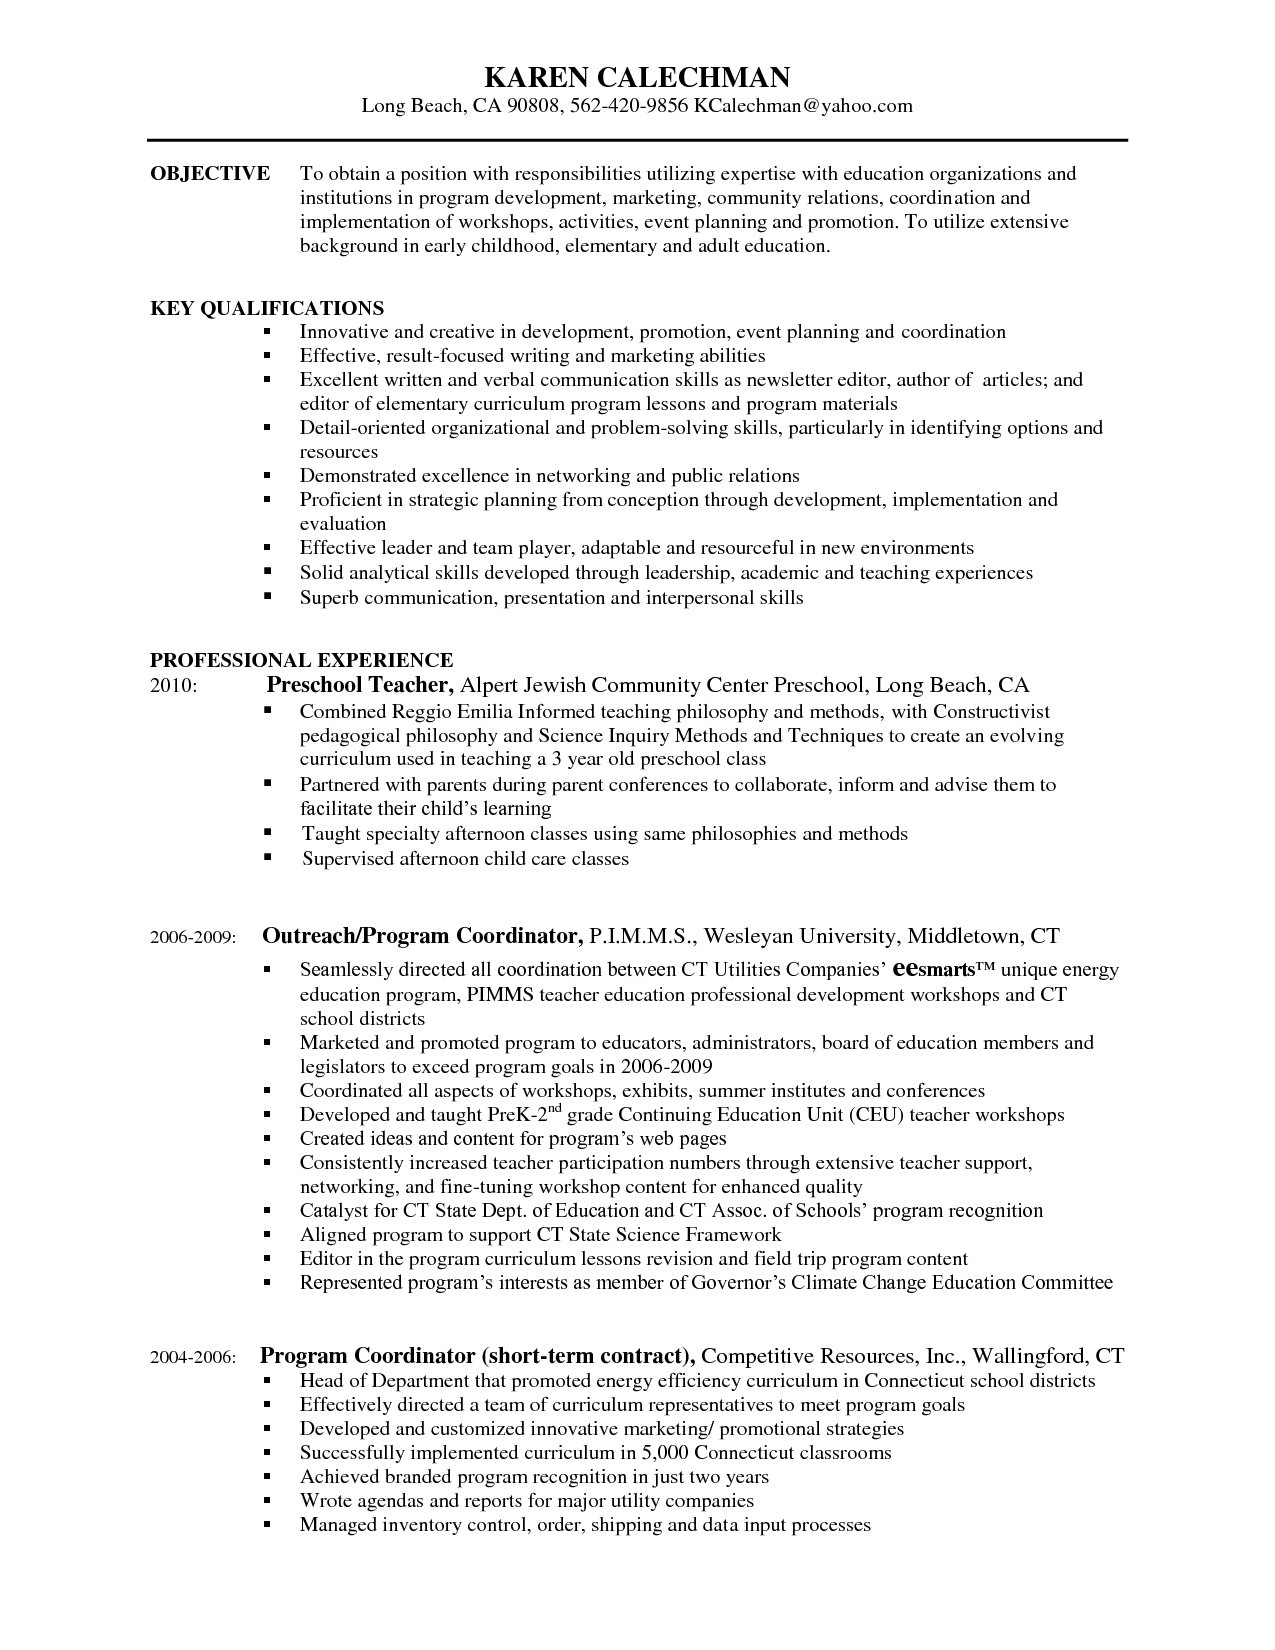 Resume For Preschool Teacher Educational Leader Resume Objective Sample Skills After School